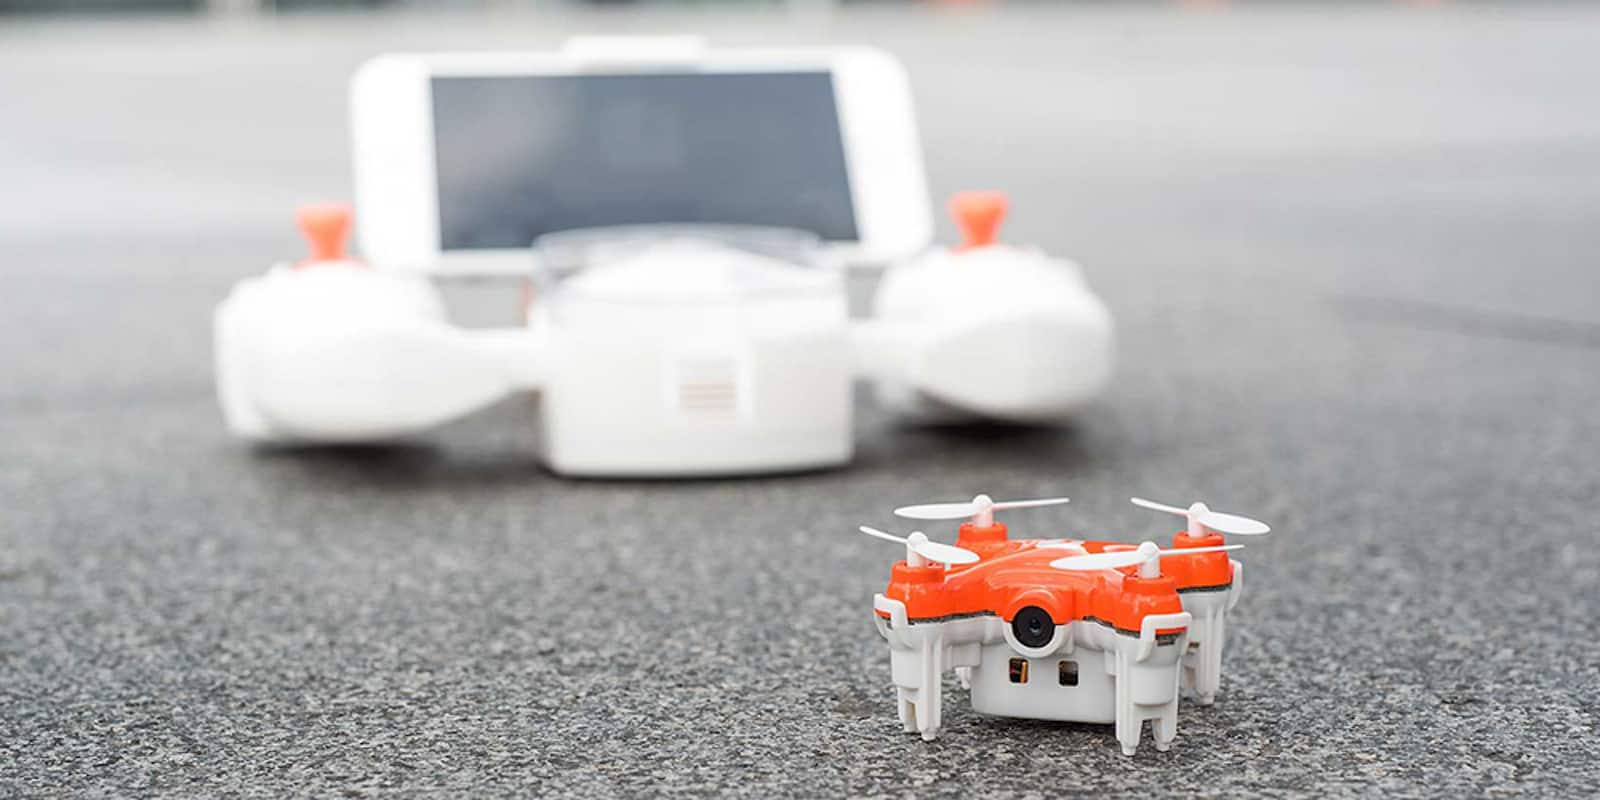 This teensy drone manages to send real-time, HD video straight to your phone.